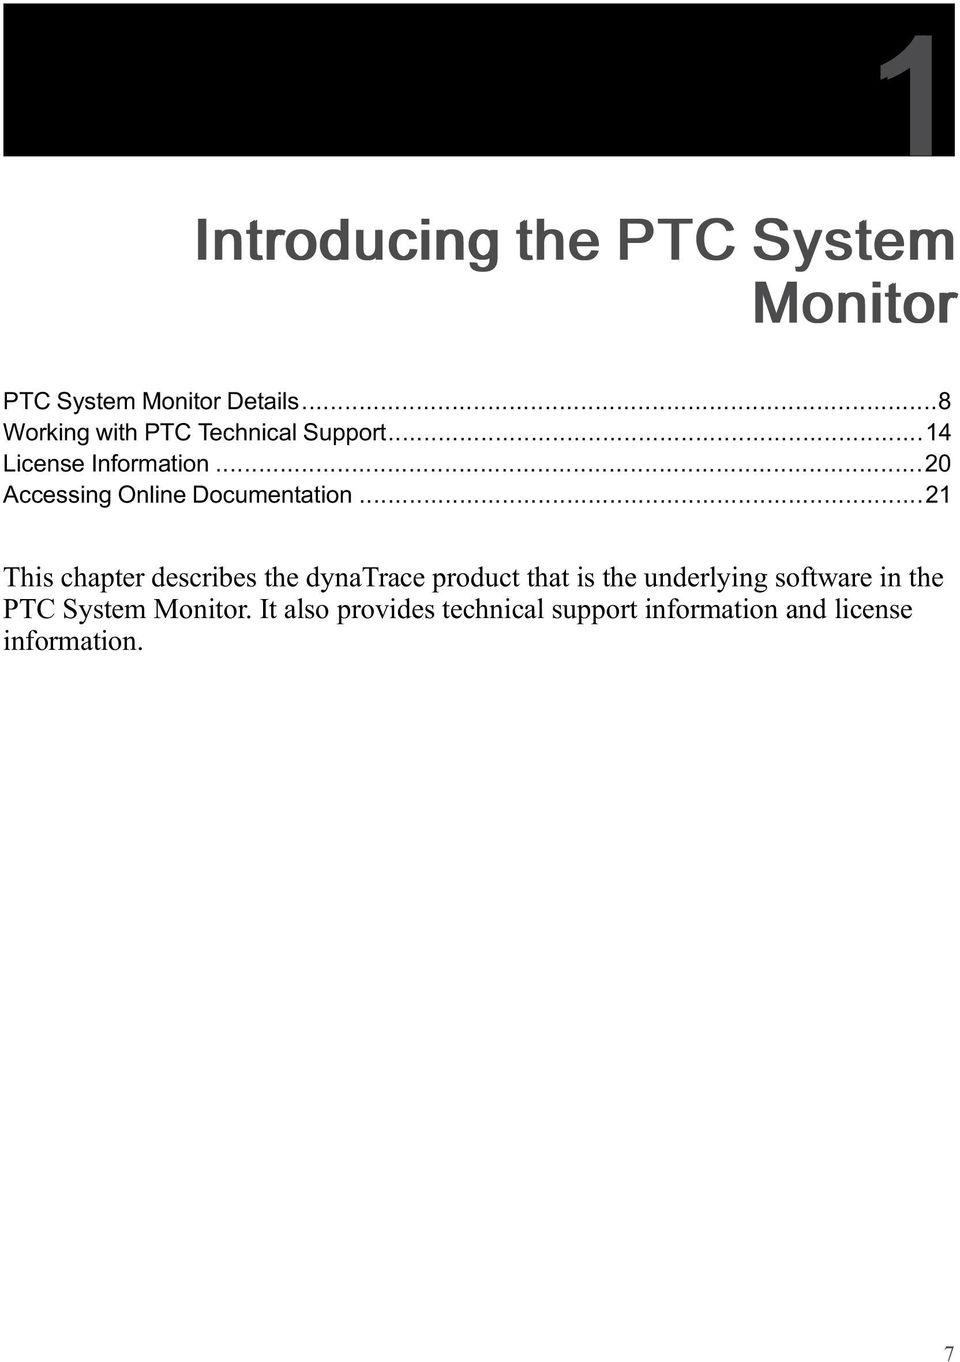 User and training guides and related documentation from Parametric